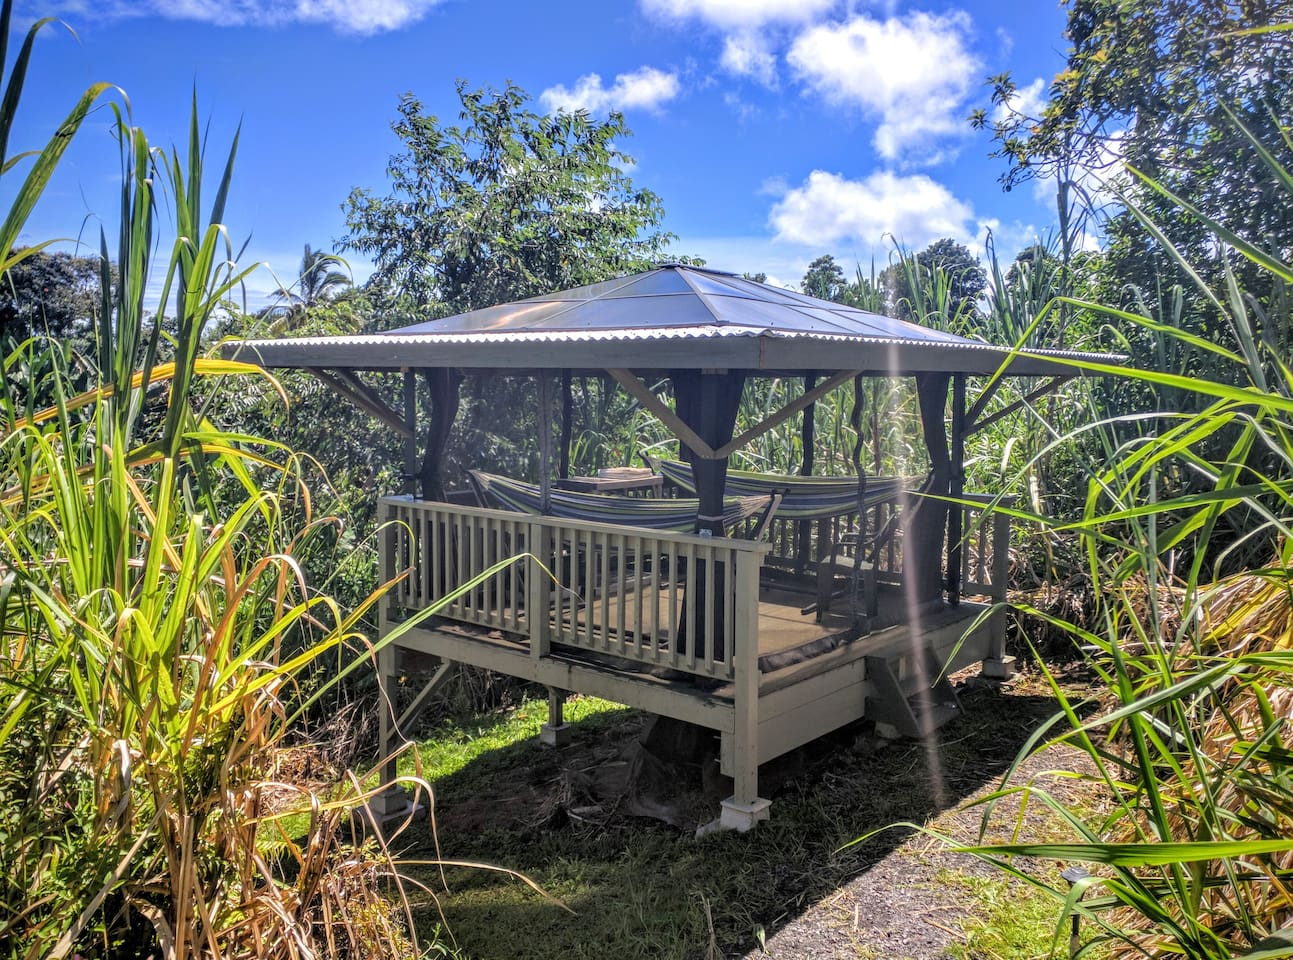 Private deluxe glamping hammock cabana huts for rent in pepeekeo private deluxe glamping hammock cabana huts for rent in pepeekeo hawaii united states falaconquin